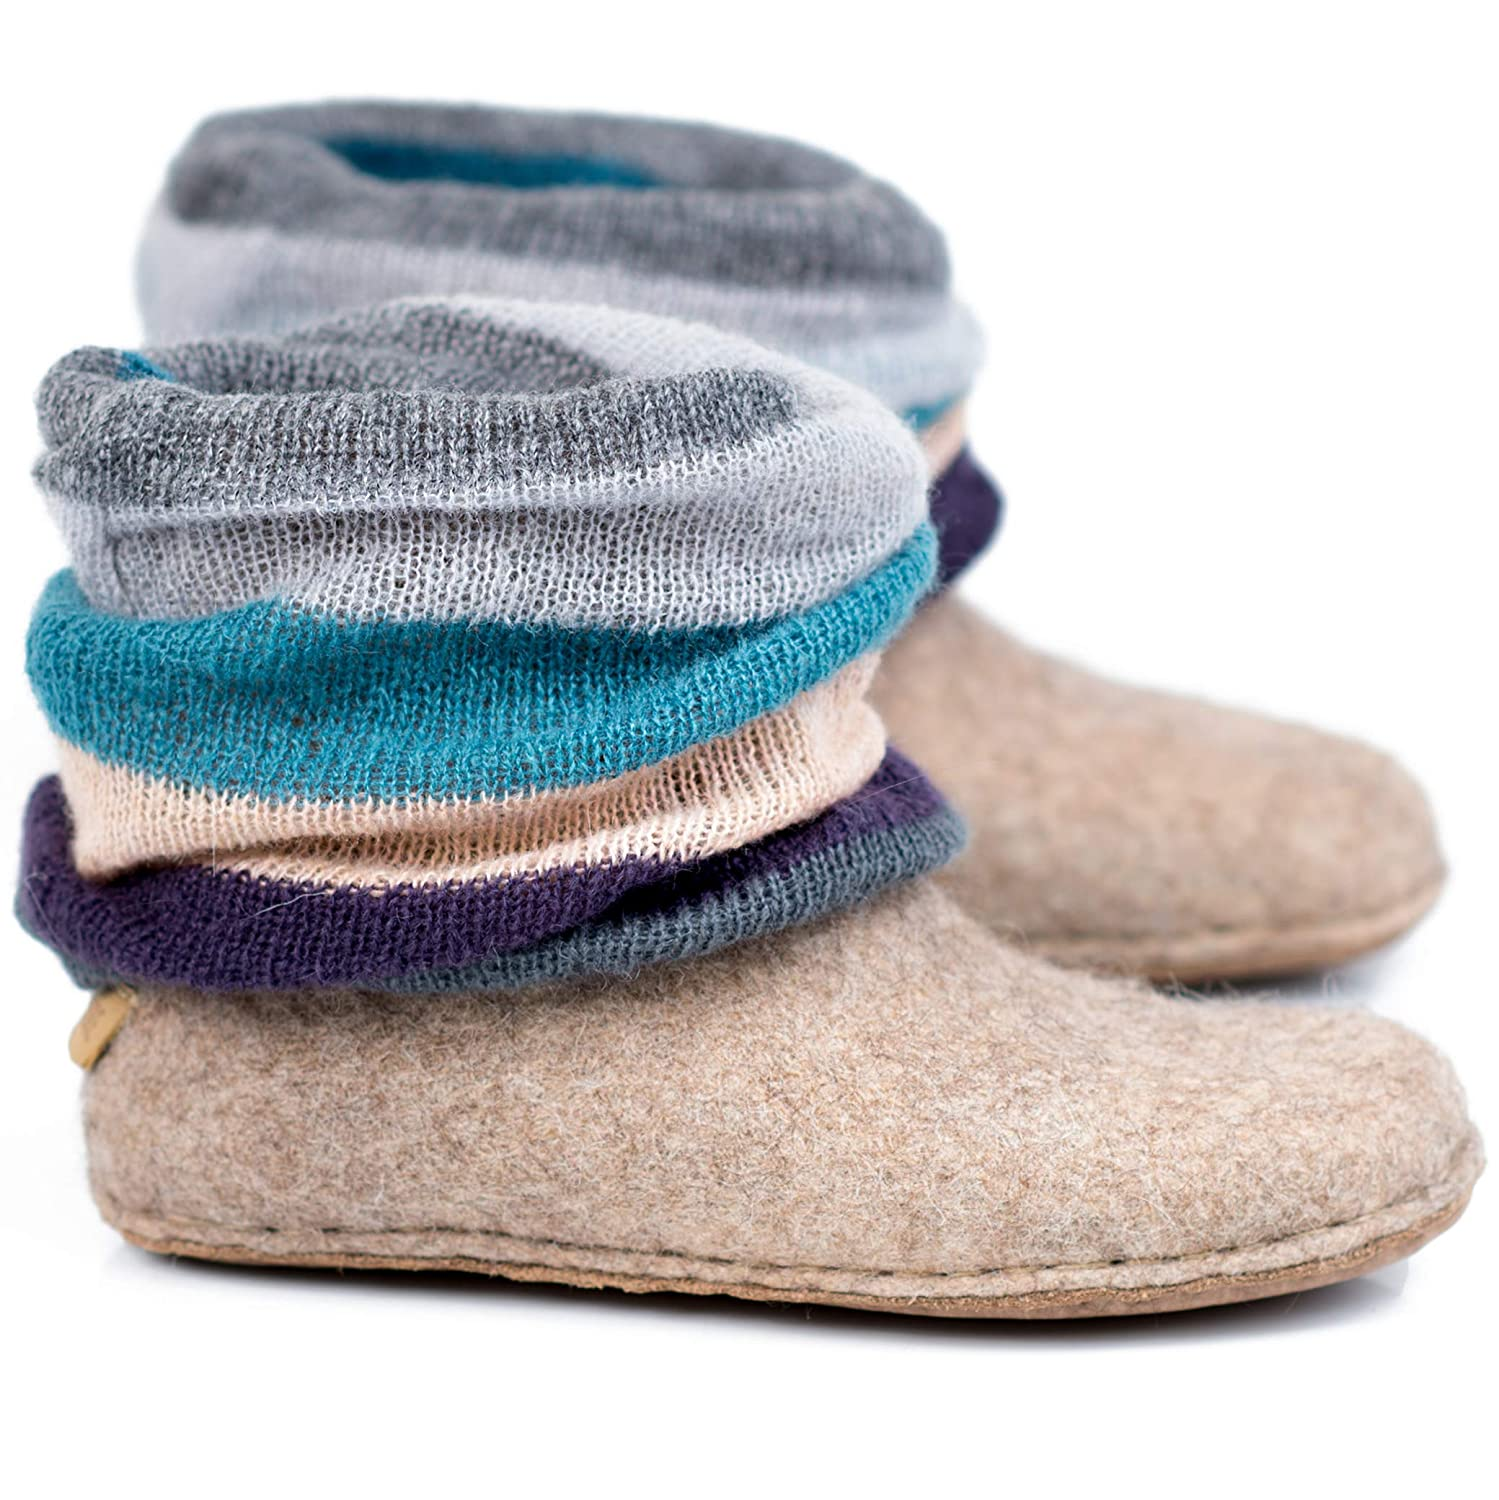 BureBure Wool Ankle Boots with Knitted Leg Warmers Handmade in Europe